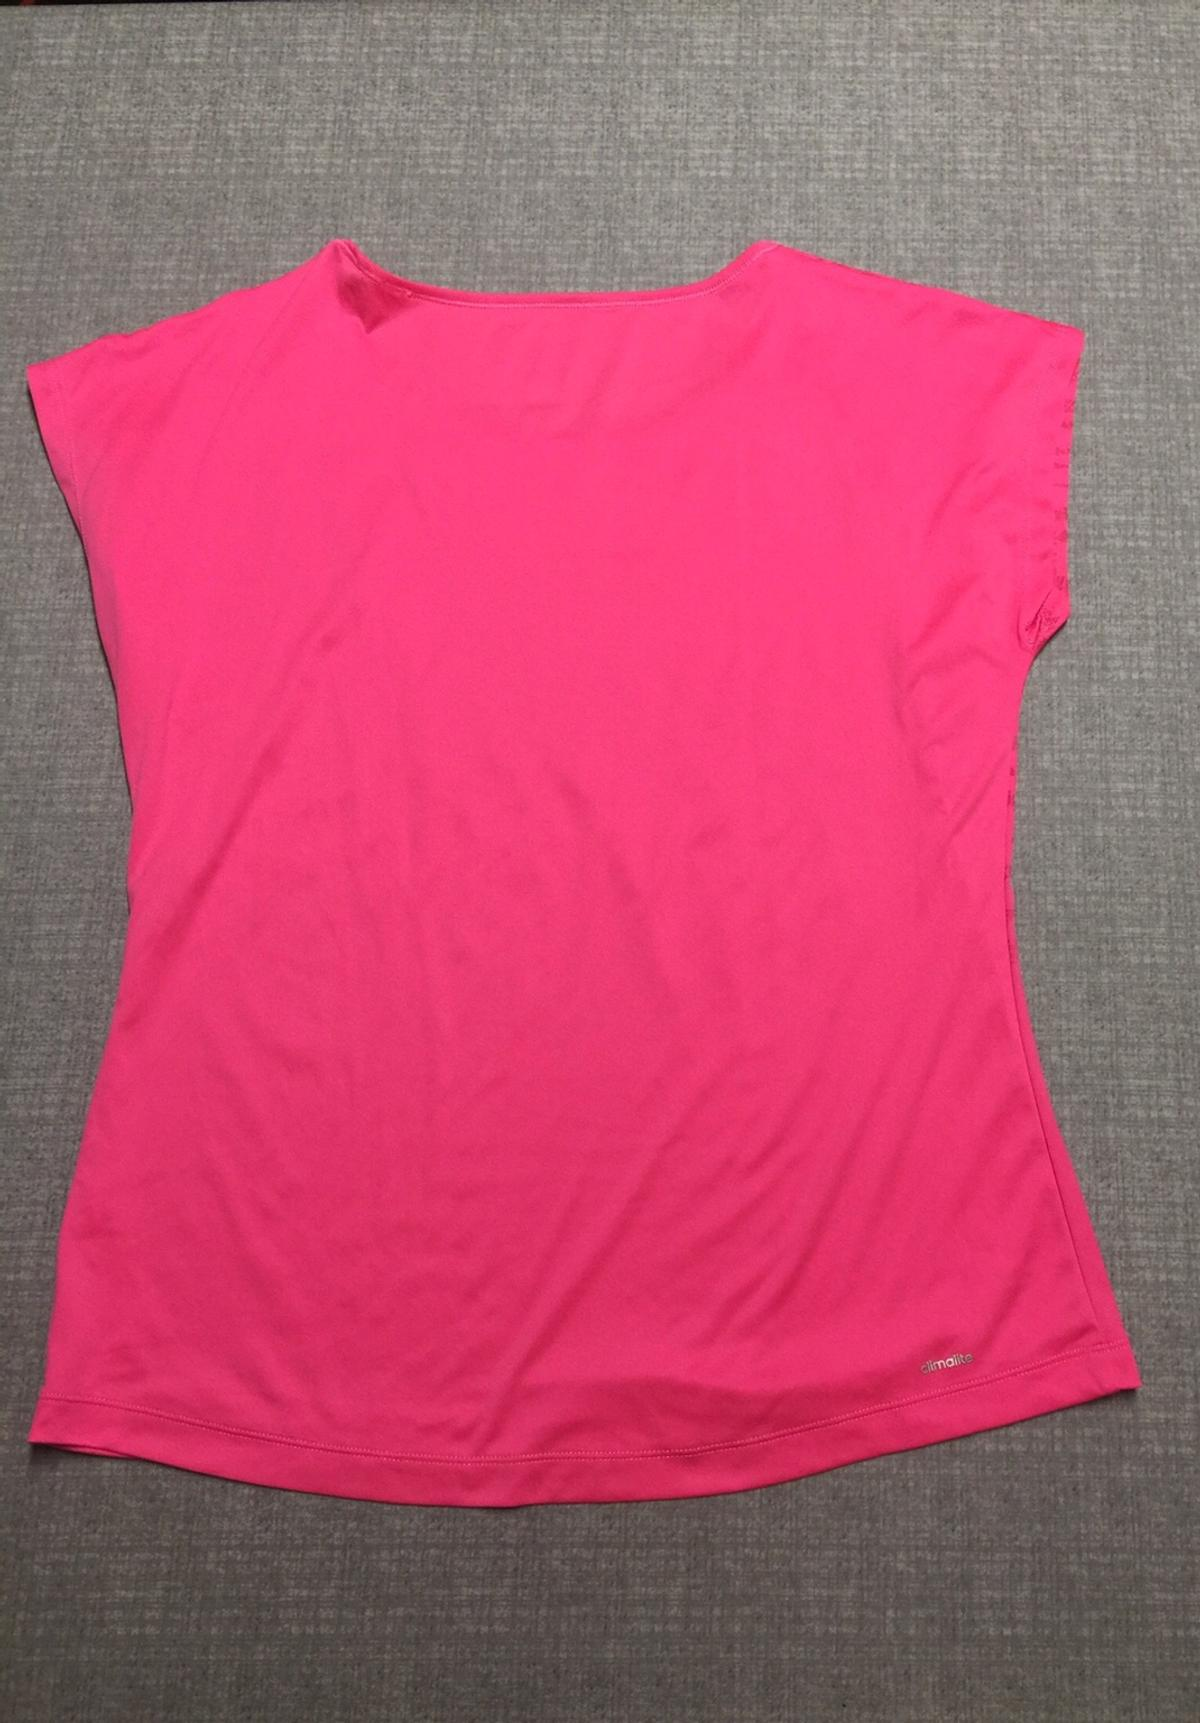 Adidas Shirt L in 65582 Aull for €12.00 for sale | Shpock